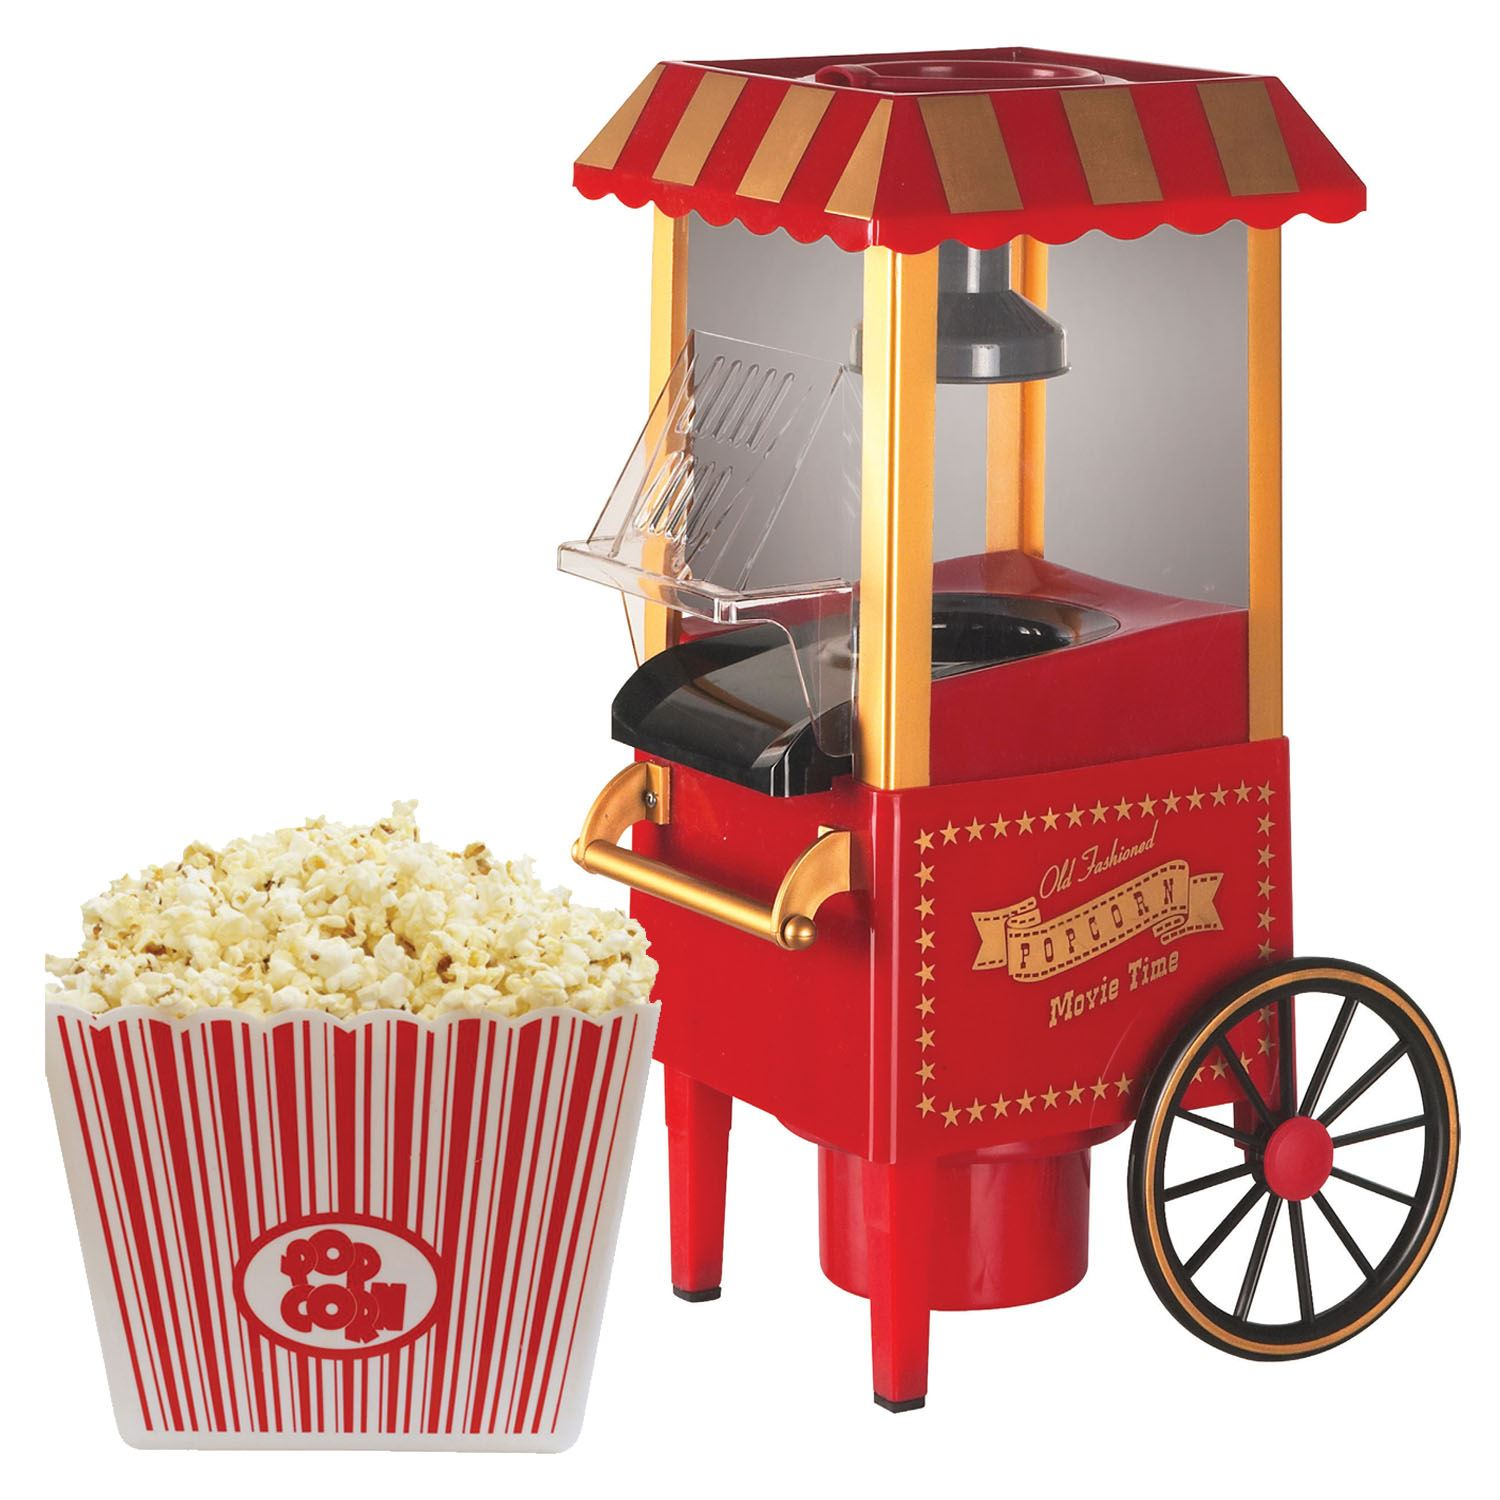 sentik electric hot air healthy popcorn popper maker machine retro cinema style ebay. Black Bedroom Furniture Sets. Home Design Ideas